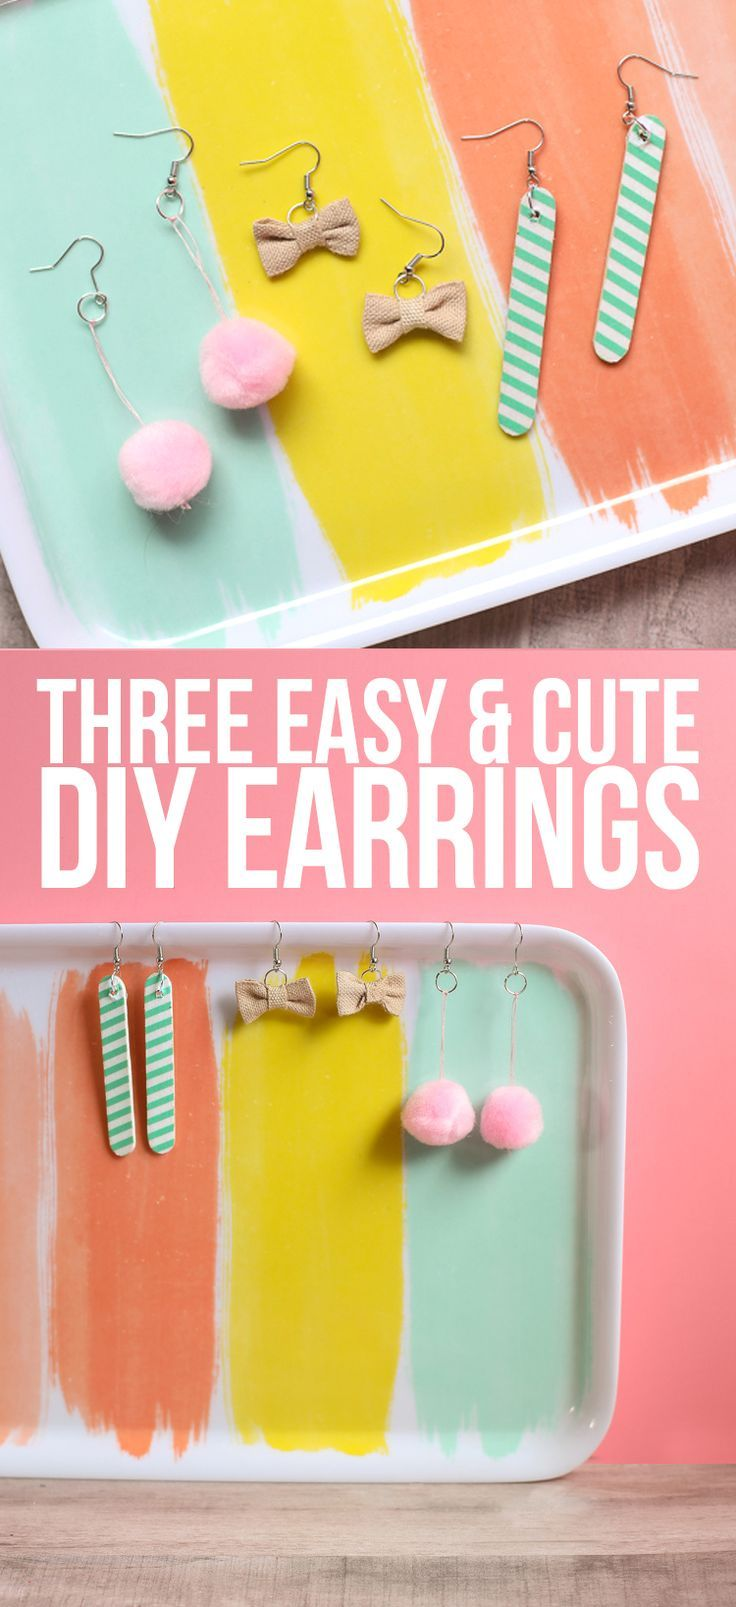 Three super cute and easy DIY earrings you can make in minutes. Love these! #earrings #crafts #jewelry